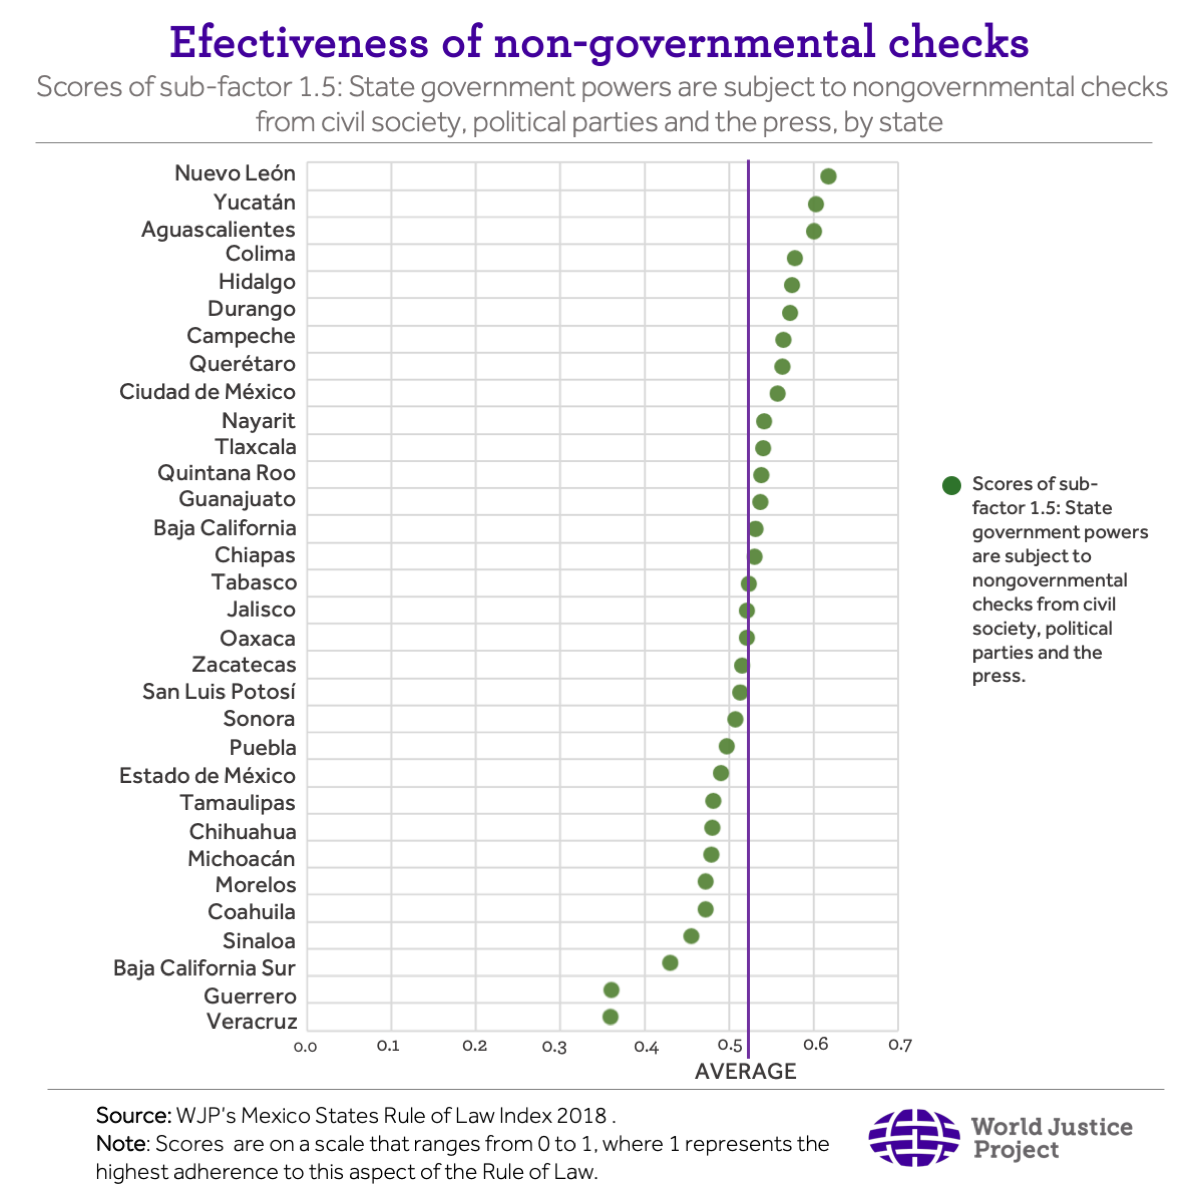 Effectiveness of non-governmental checks